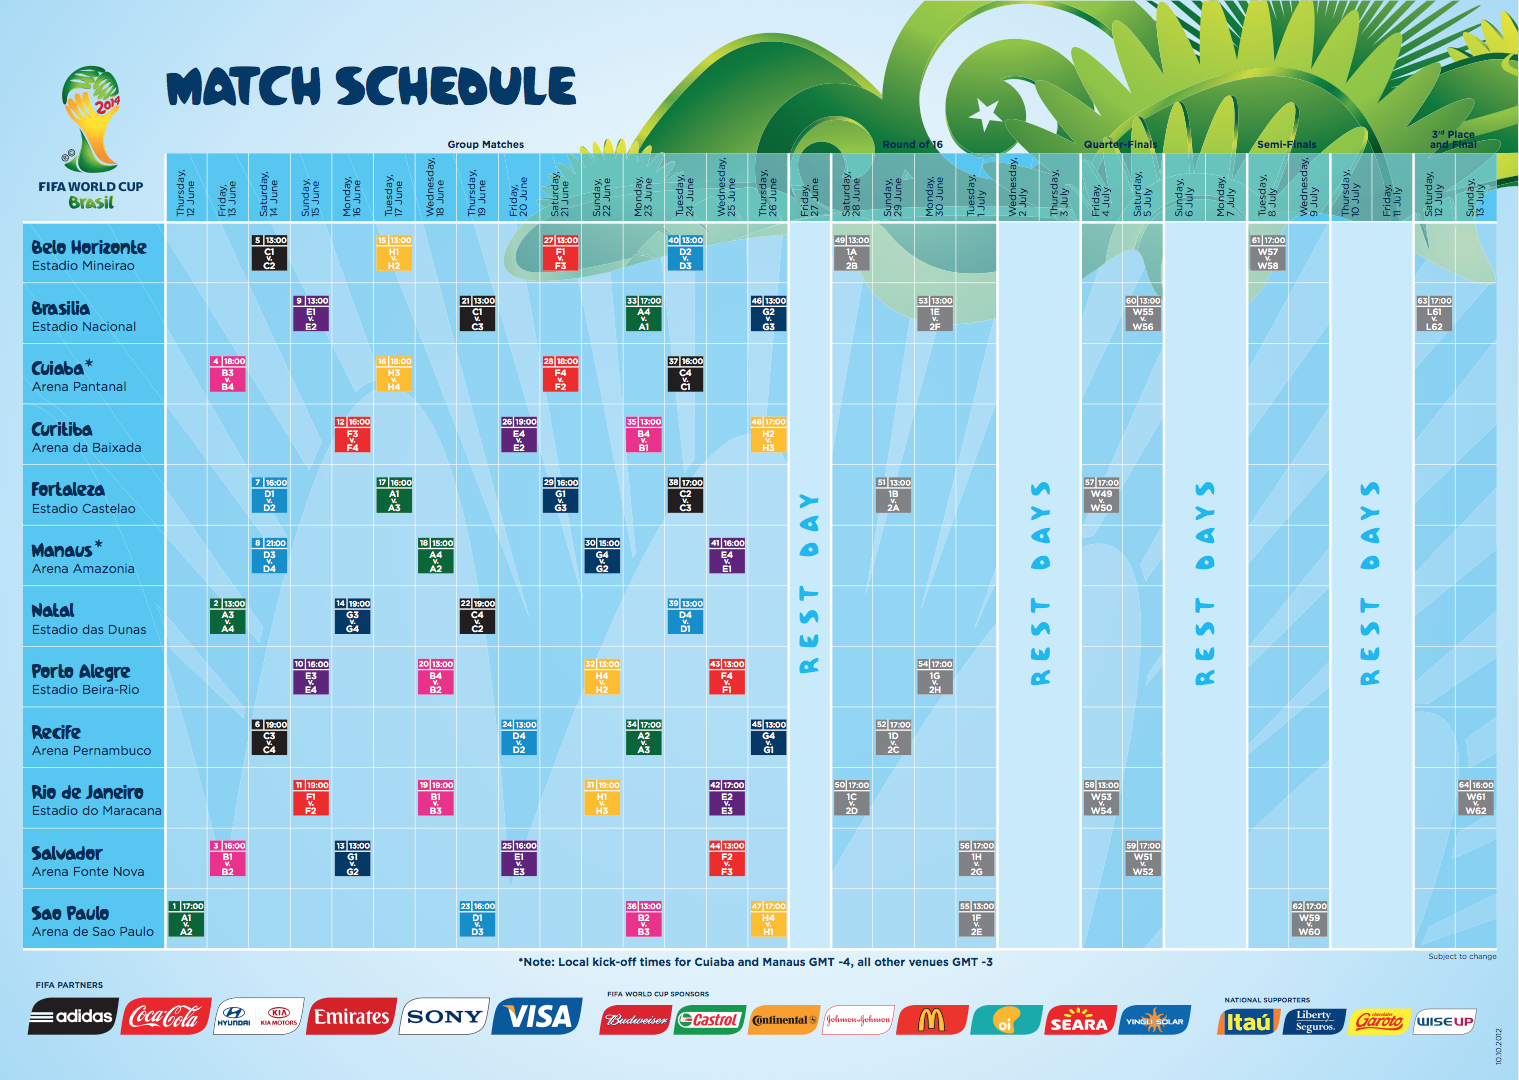 2014 World Cup Schedule World Cup Schedule Fifa 2014 World Cup World Cup Match